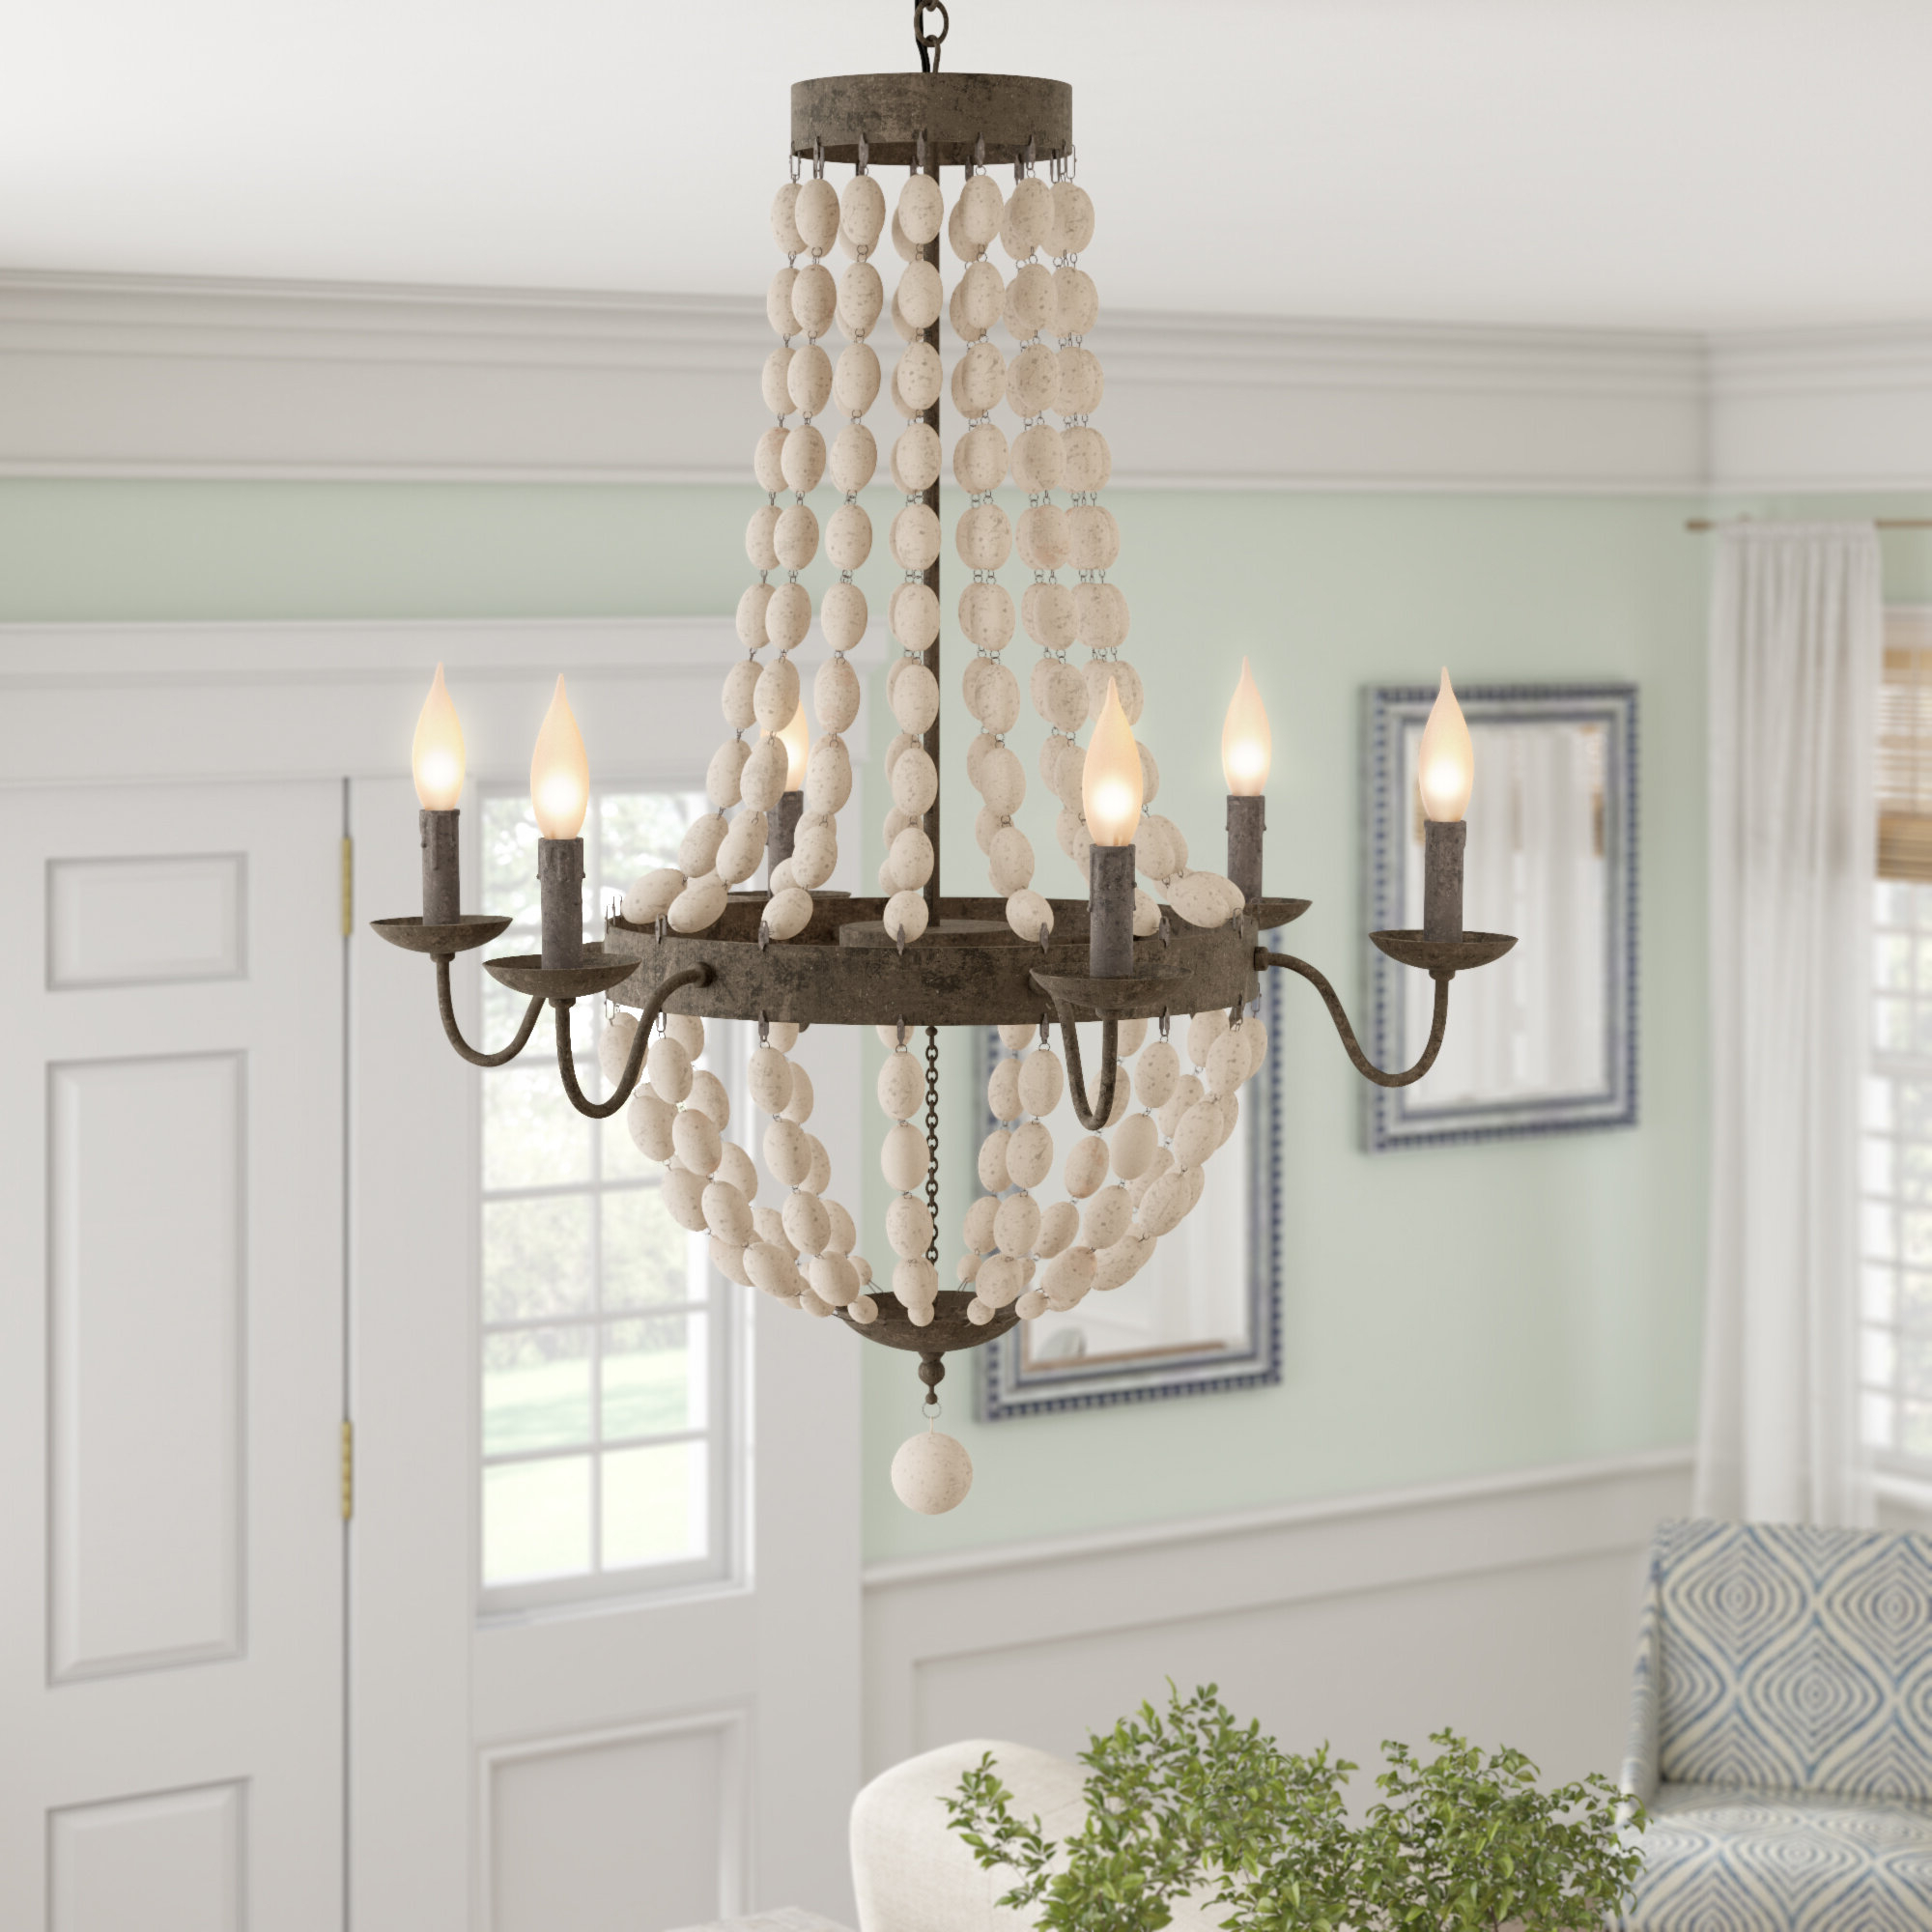 Latest Duron 5 Light Empire Chandeliers In Bargas 6 Light Empire Chandelier (View 15 of 25)